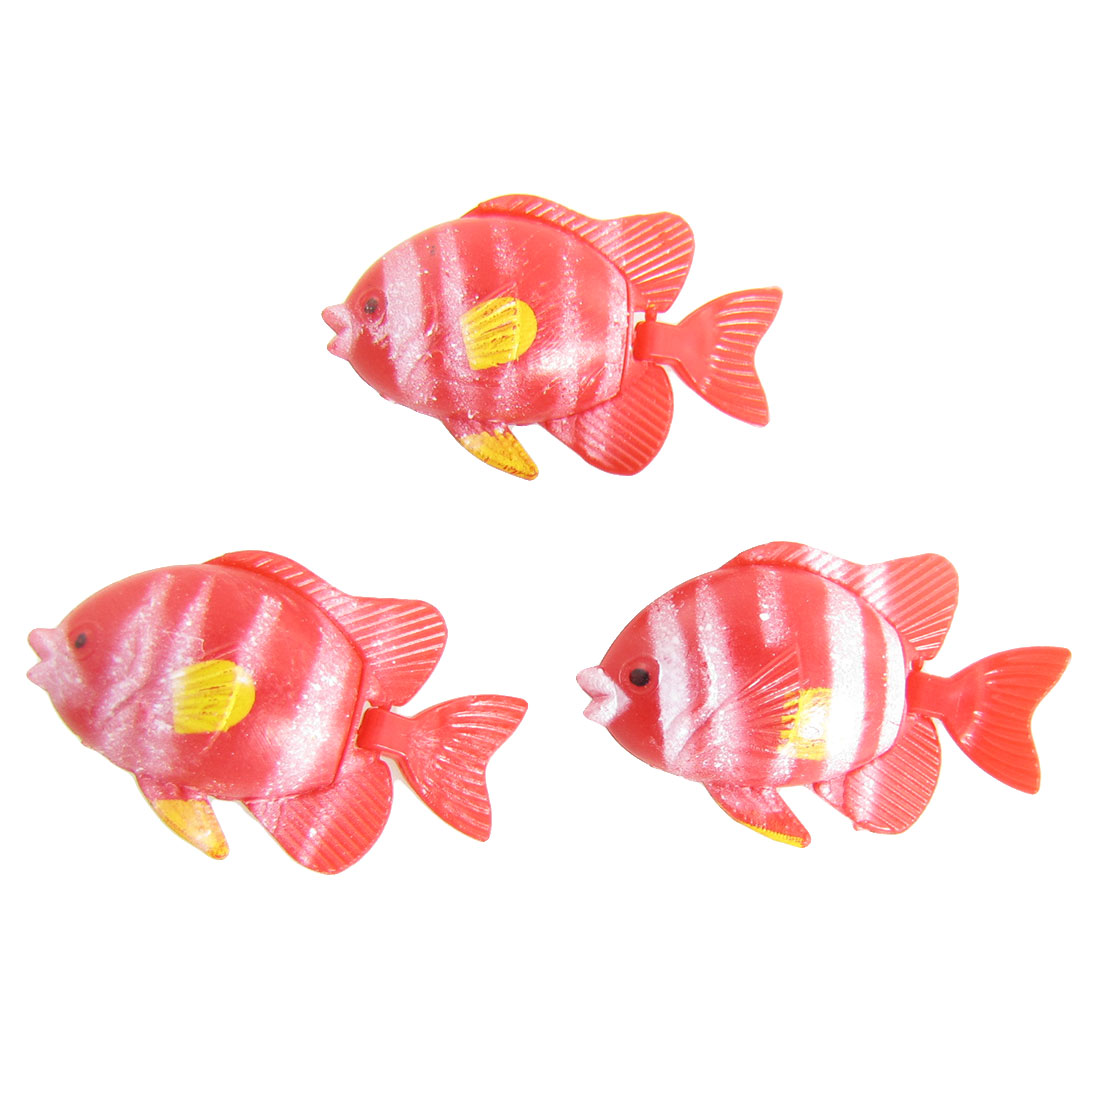 3 Pcs Flexible Tail Plastic Fish for Aquarium Fish Tank Oranment